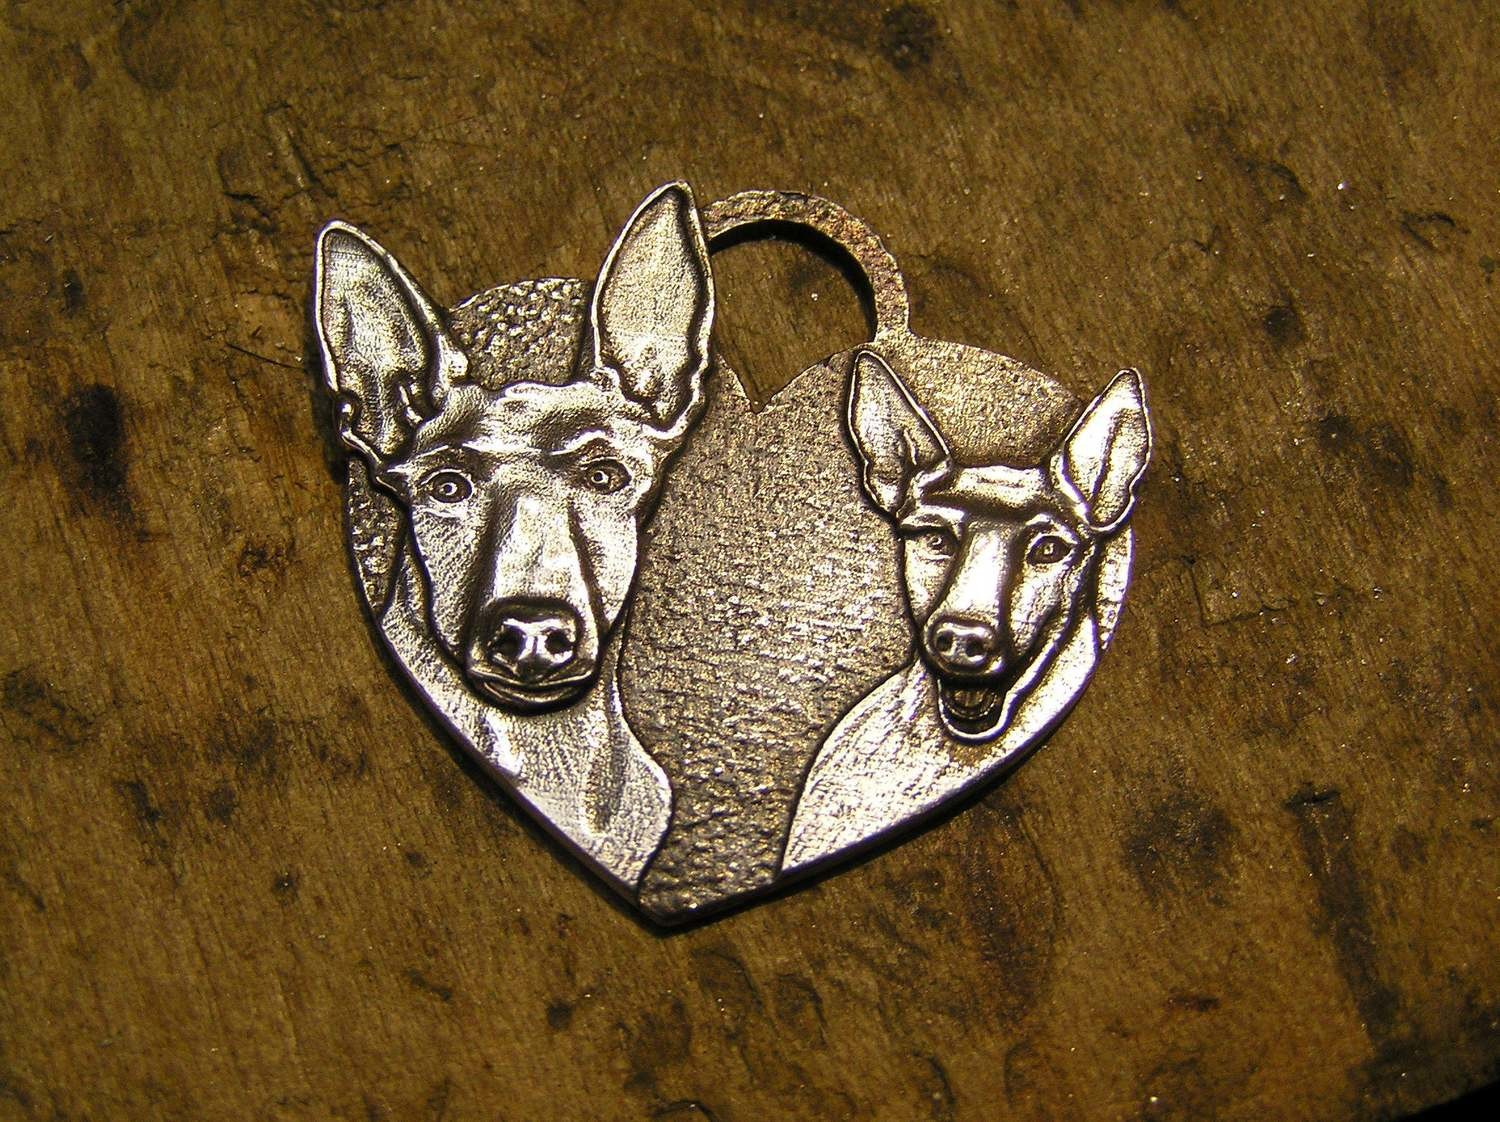 Podenco heart shaped sterling silver pendant